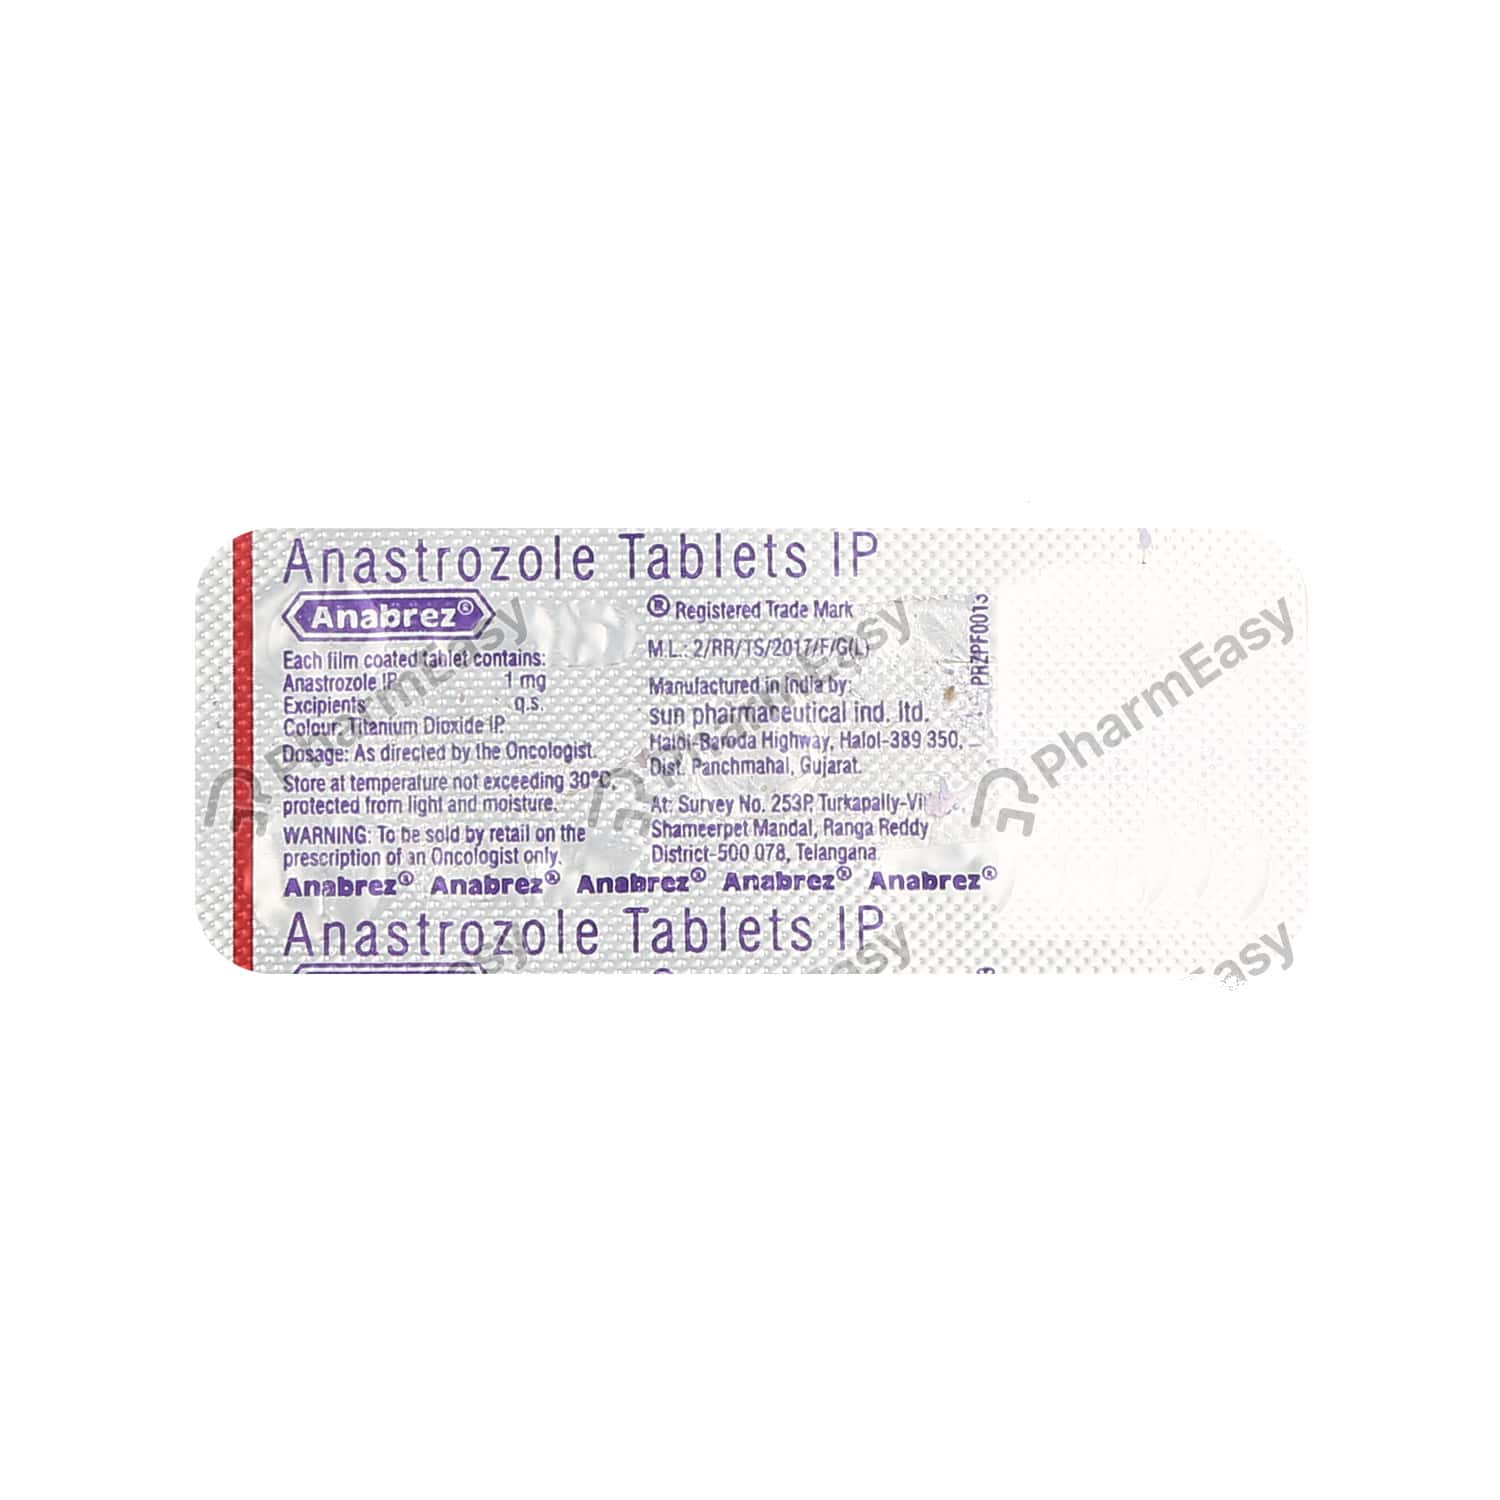 Anabrez 1mg Tablet